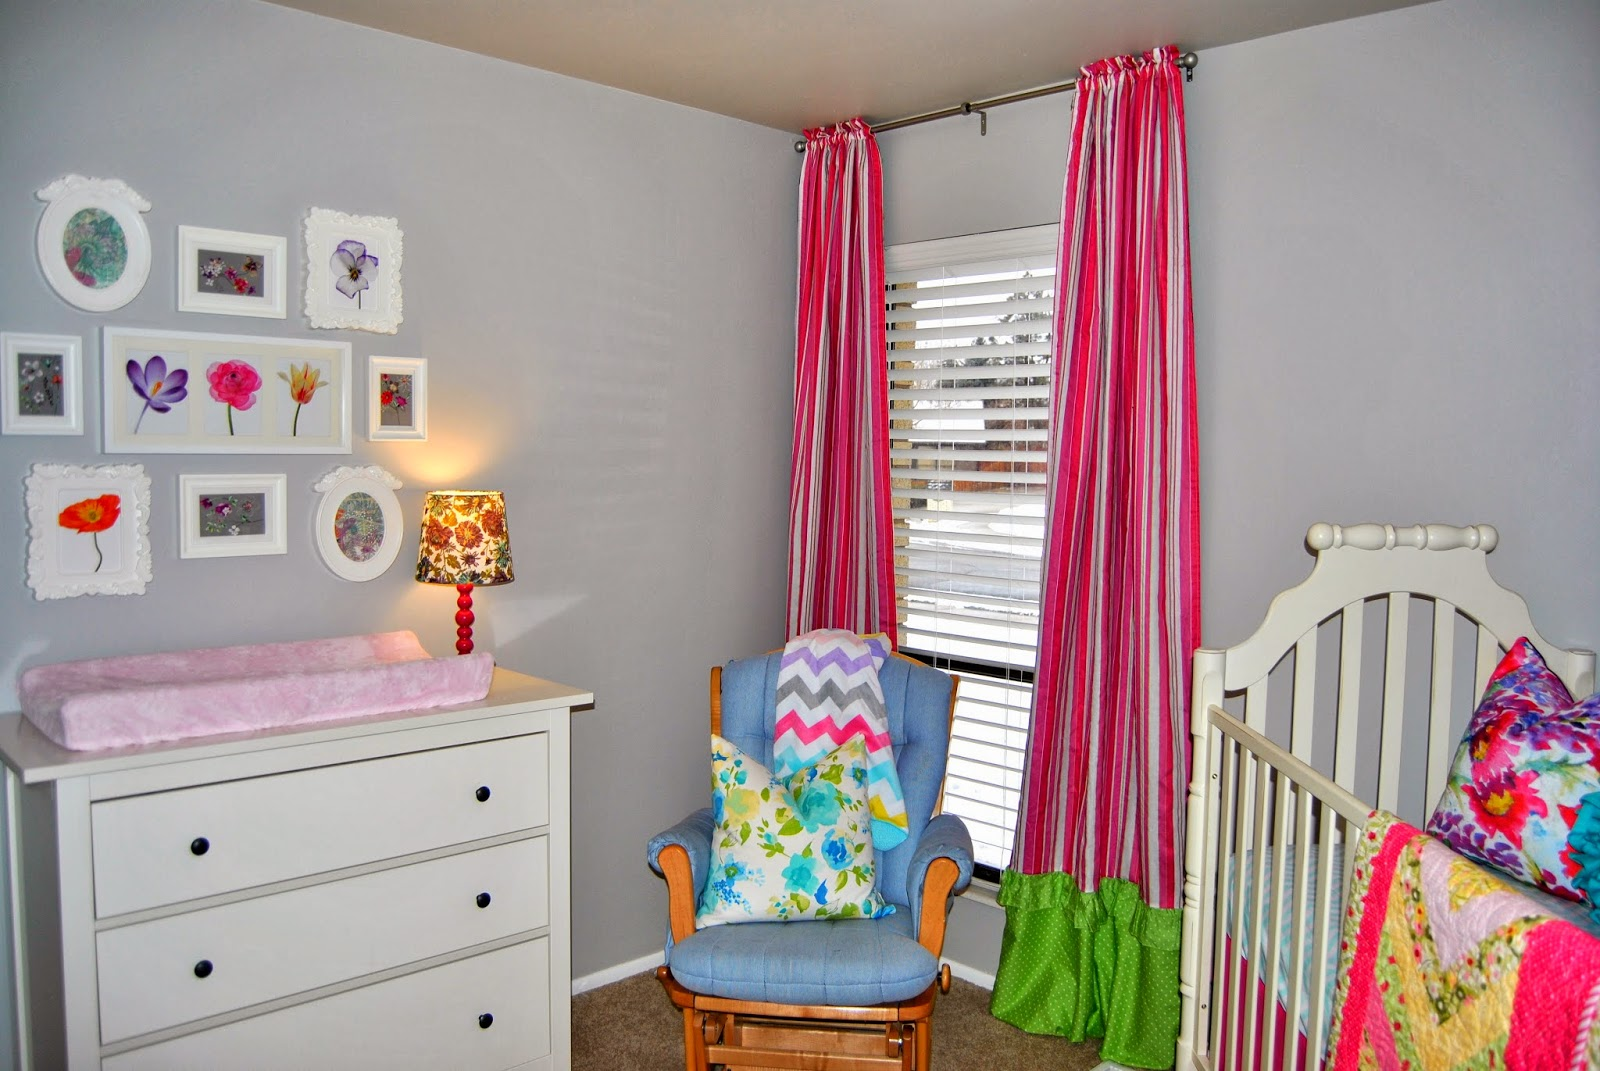 Studio 7 Interior Design Client Reveal Colorful Nursery